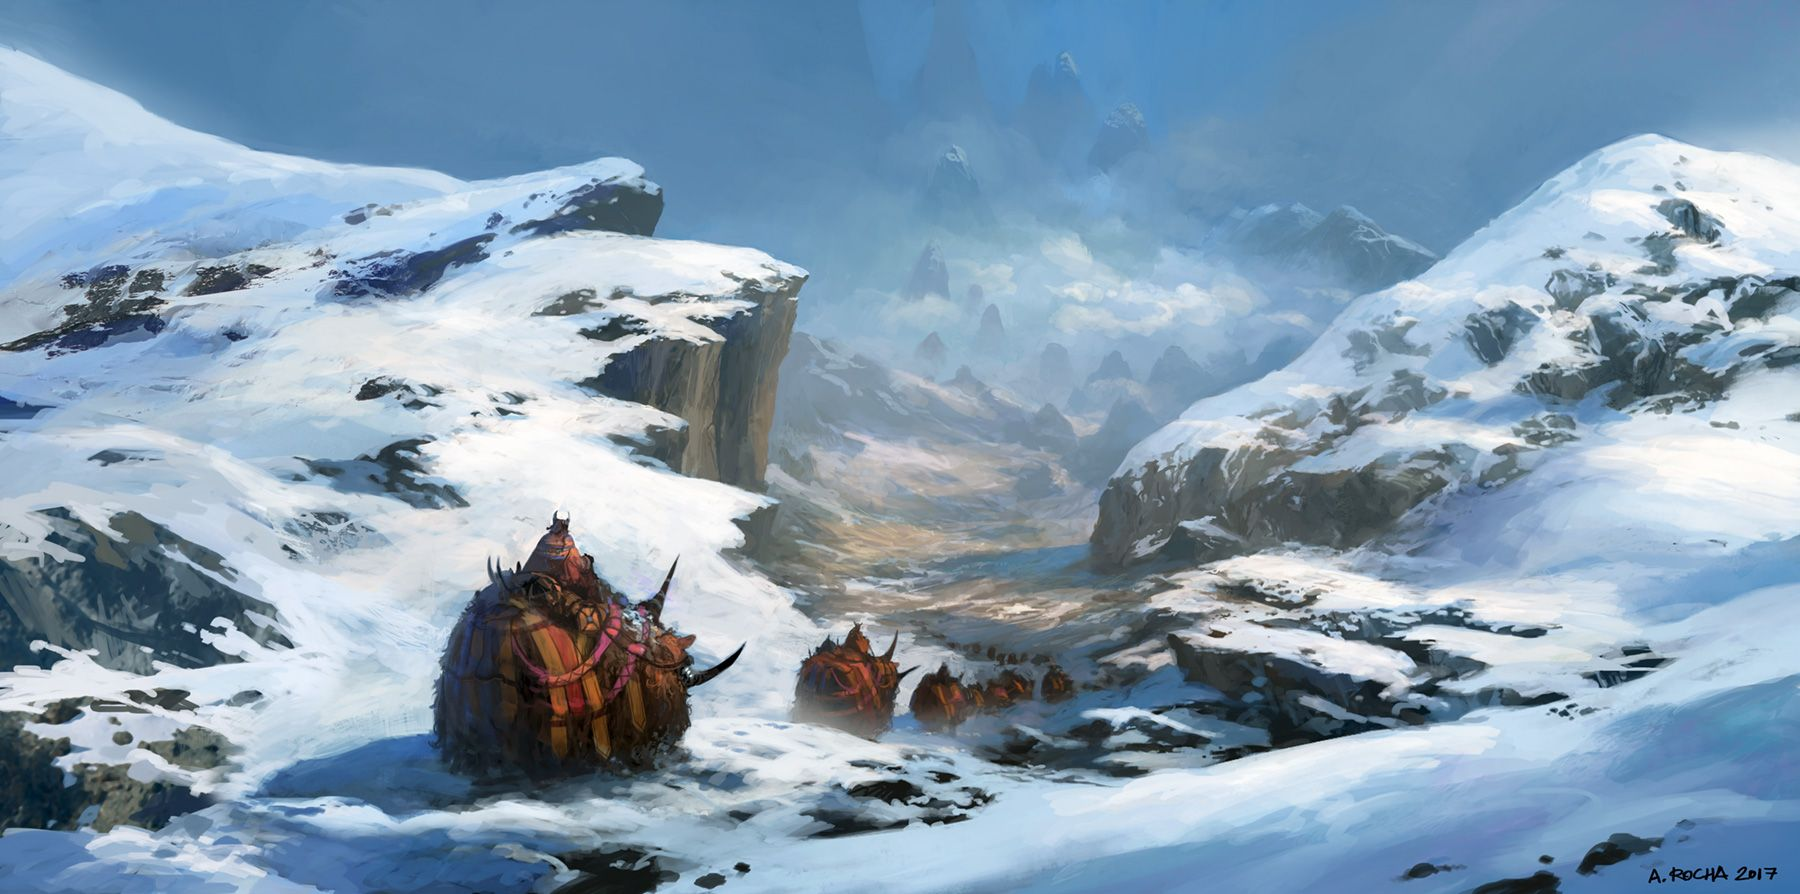 Winter Travellers by Andreas Rocha